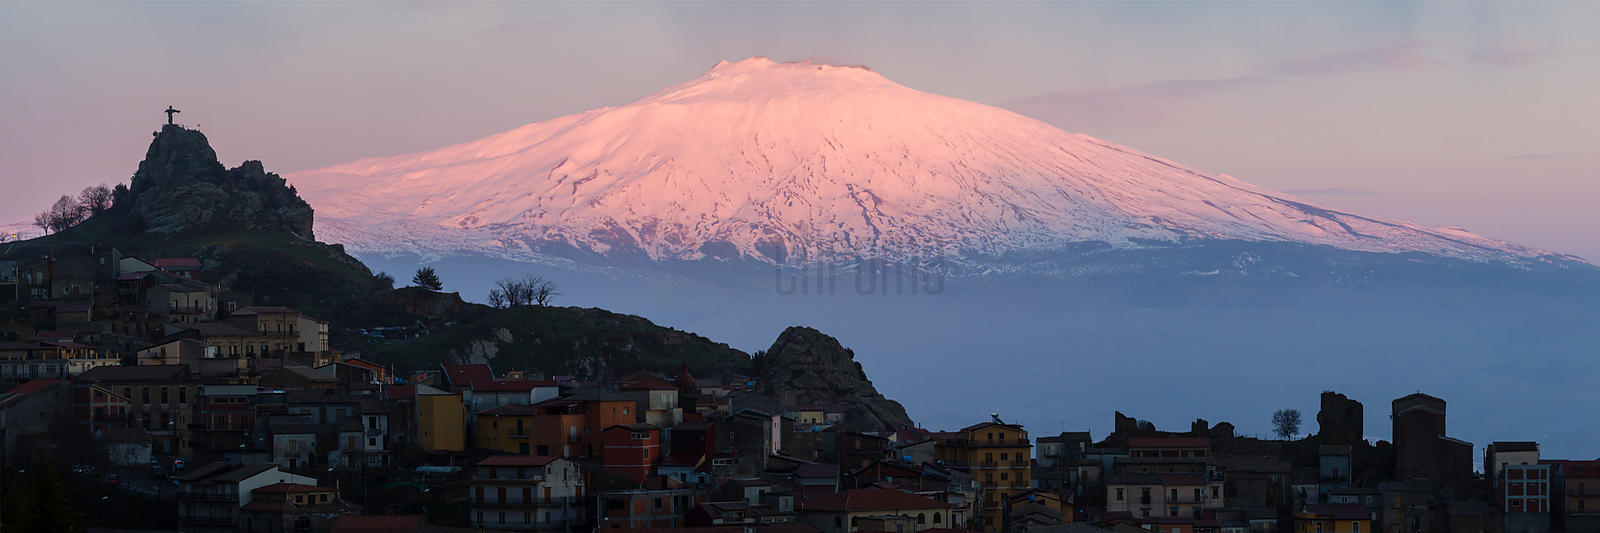 View of Mt Etna with the Town of Cesarò in the Foreground